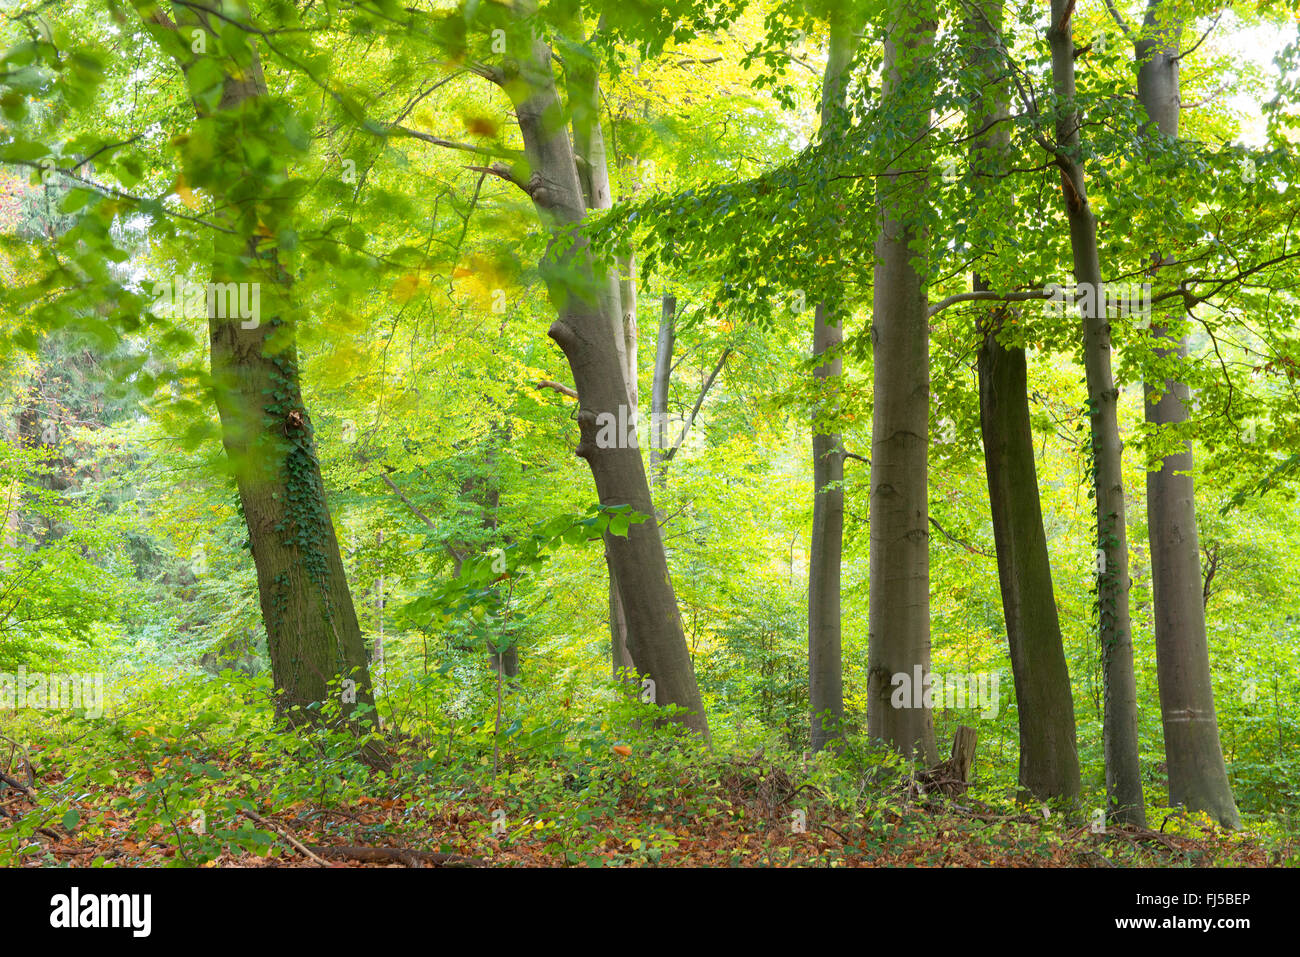 beech forest at the Dammer Mountains, Germany, Lower Saxony, Oldenburger Muensterland, Damme - Stock Image